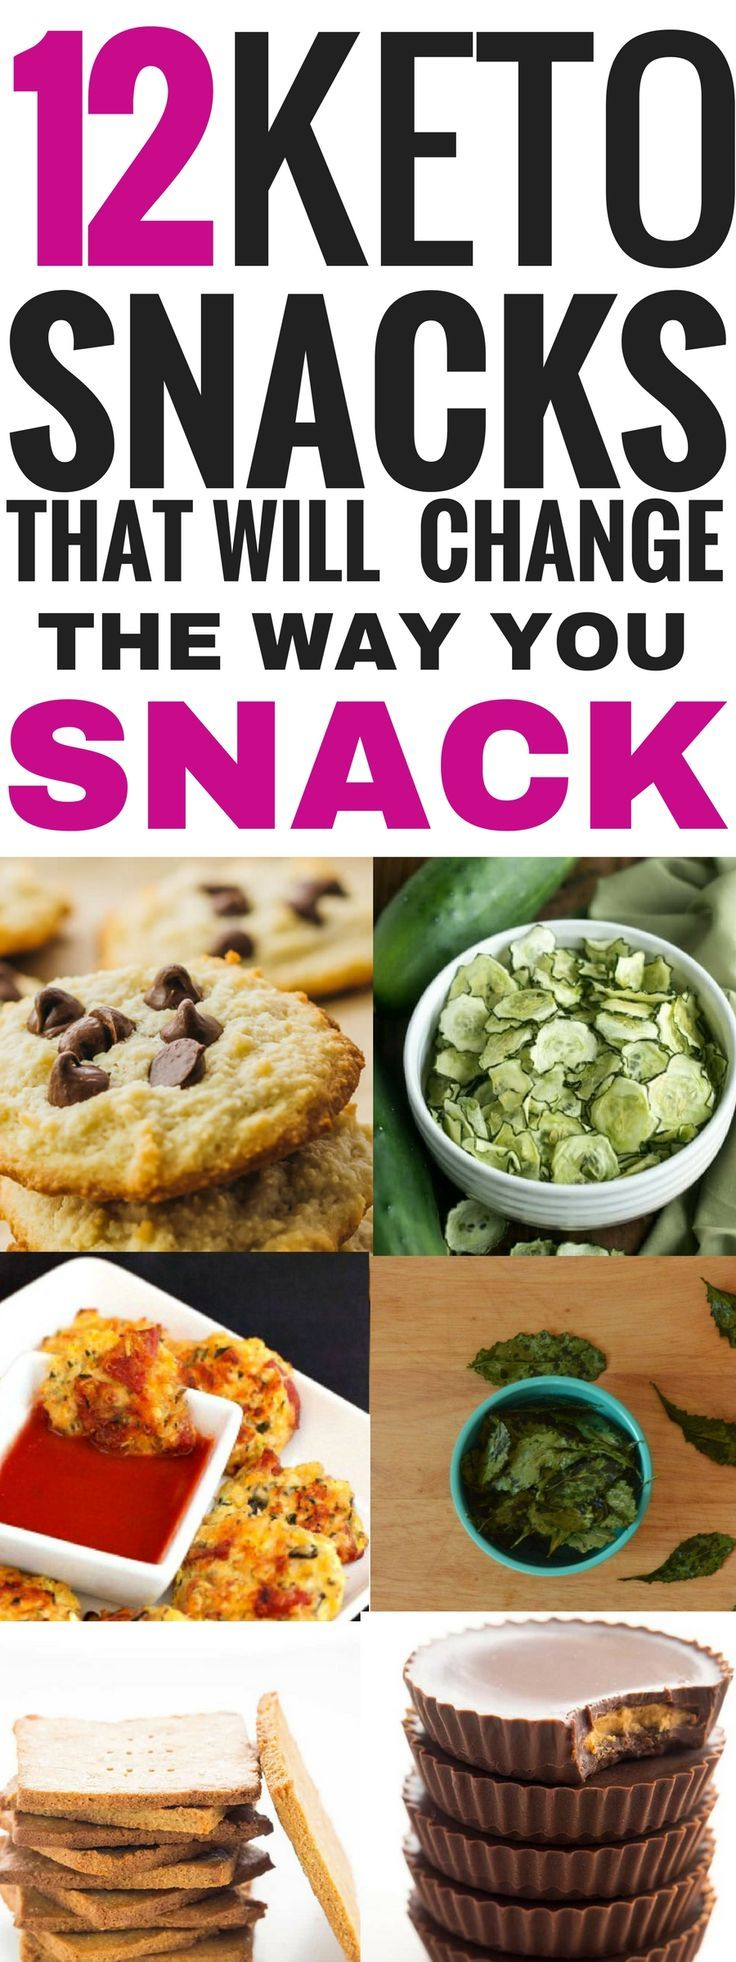 12 Tasty Keto Snacks You'll Wish You Knew About Sooner